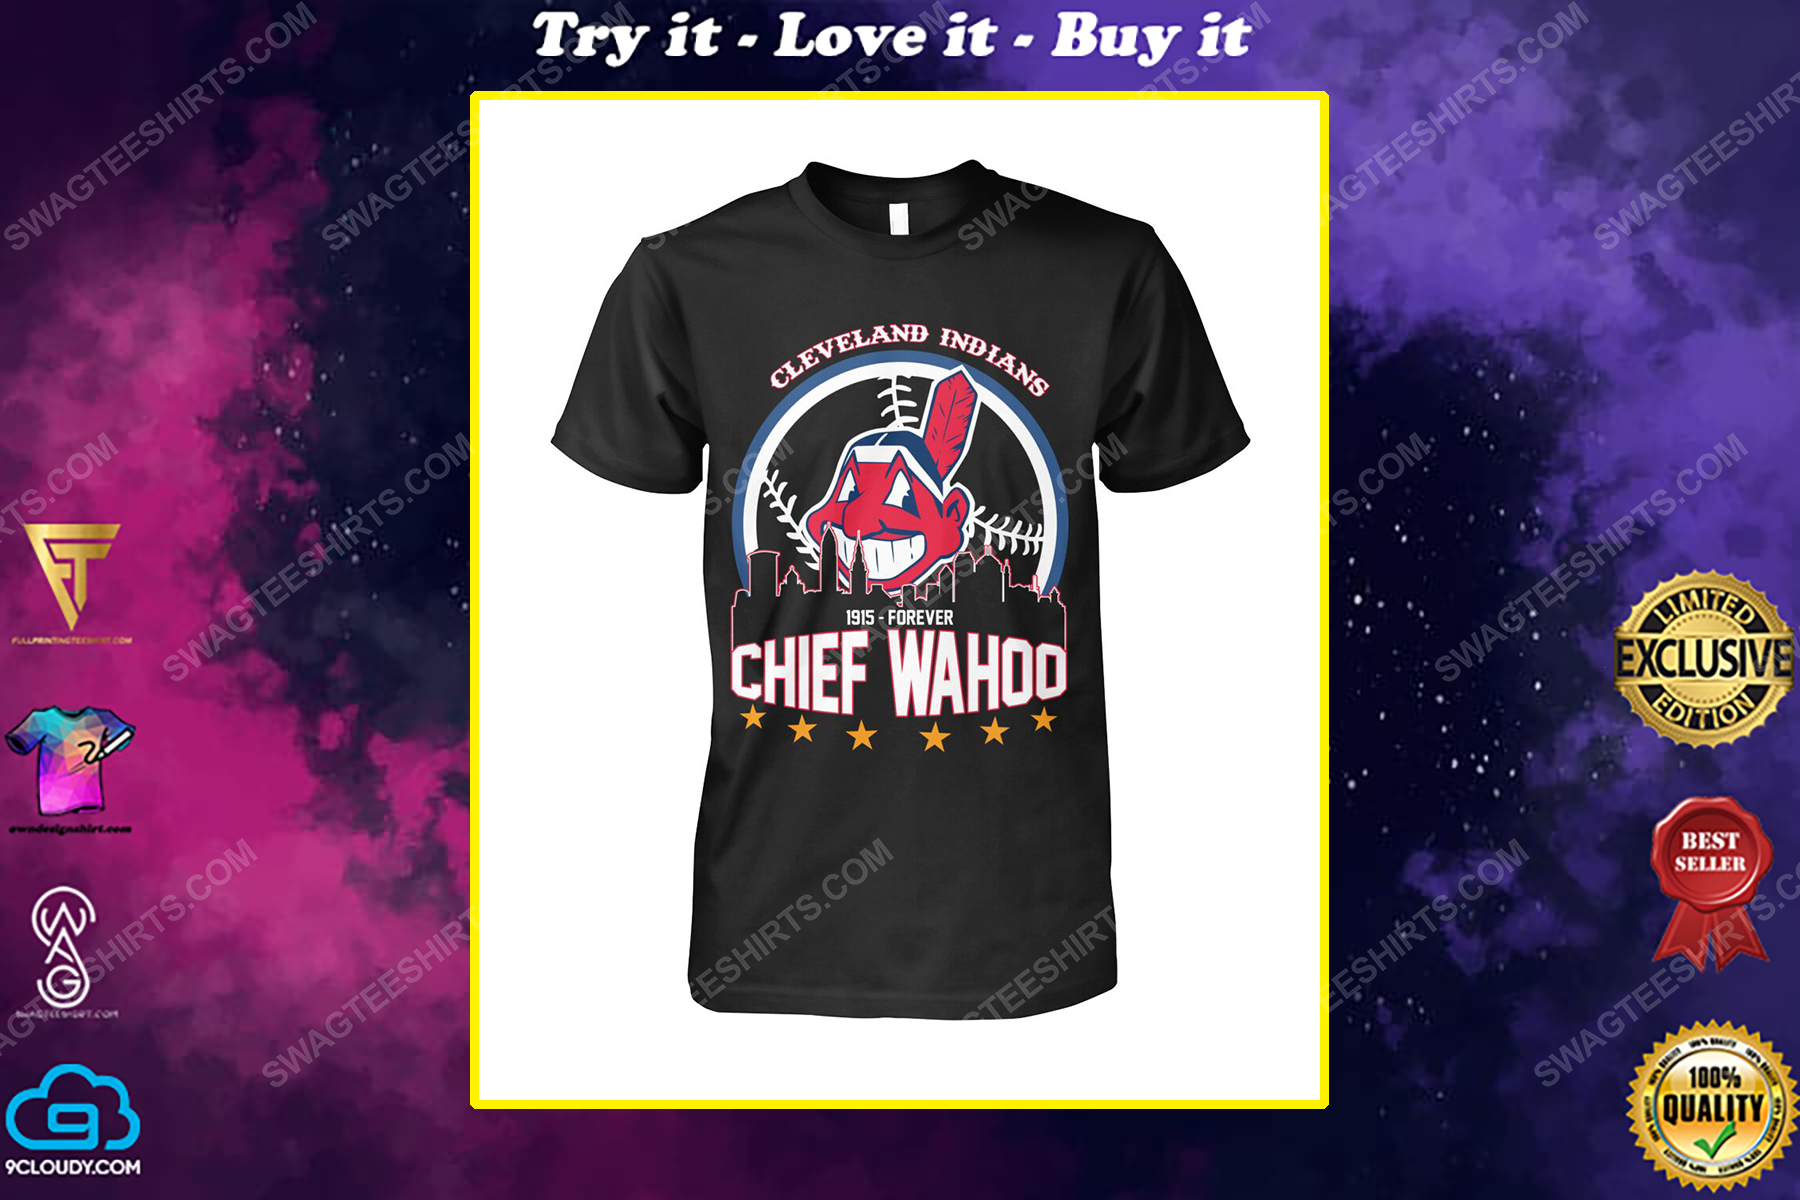 The cleveland indians 1915 forever chief wahoo shirt